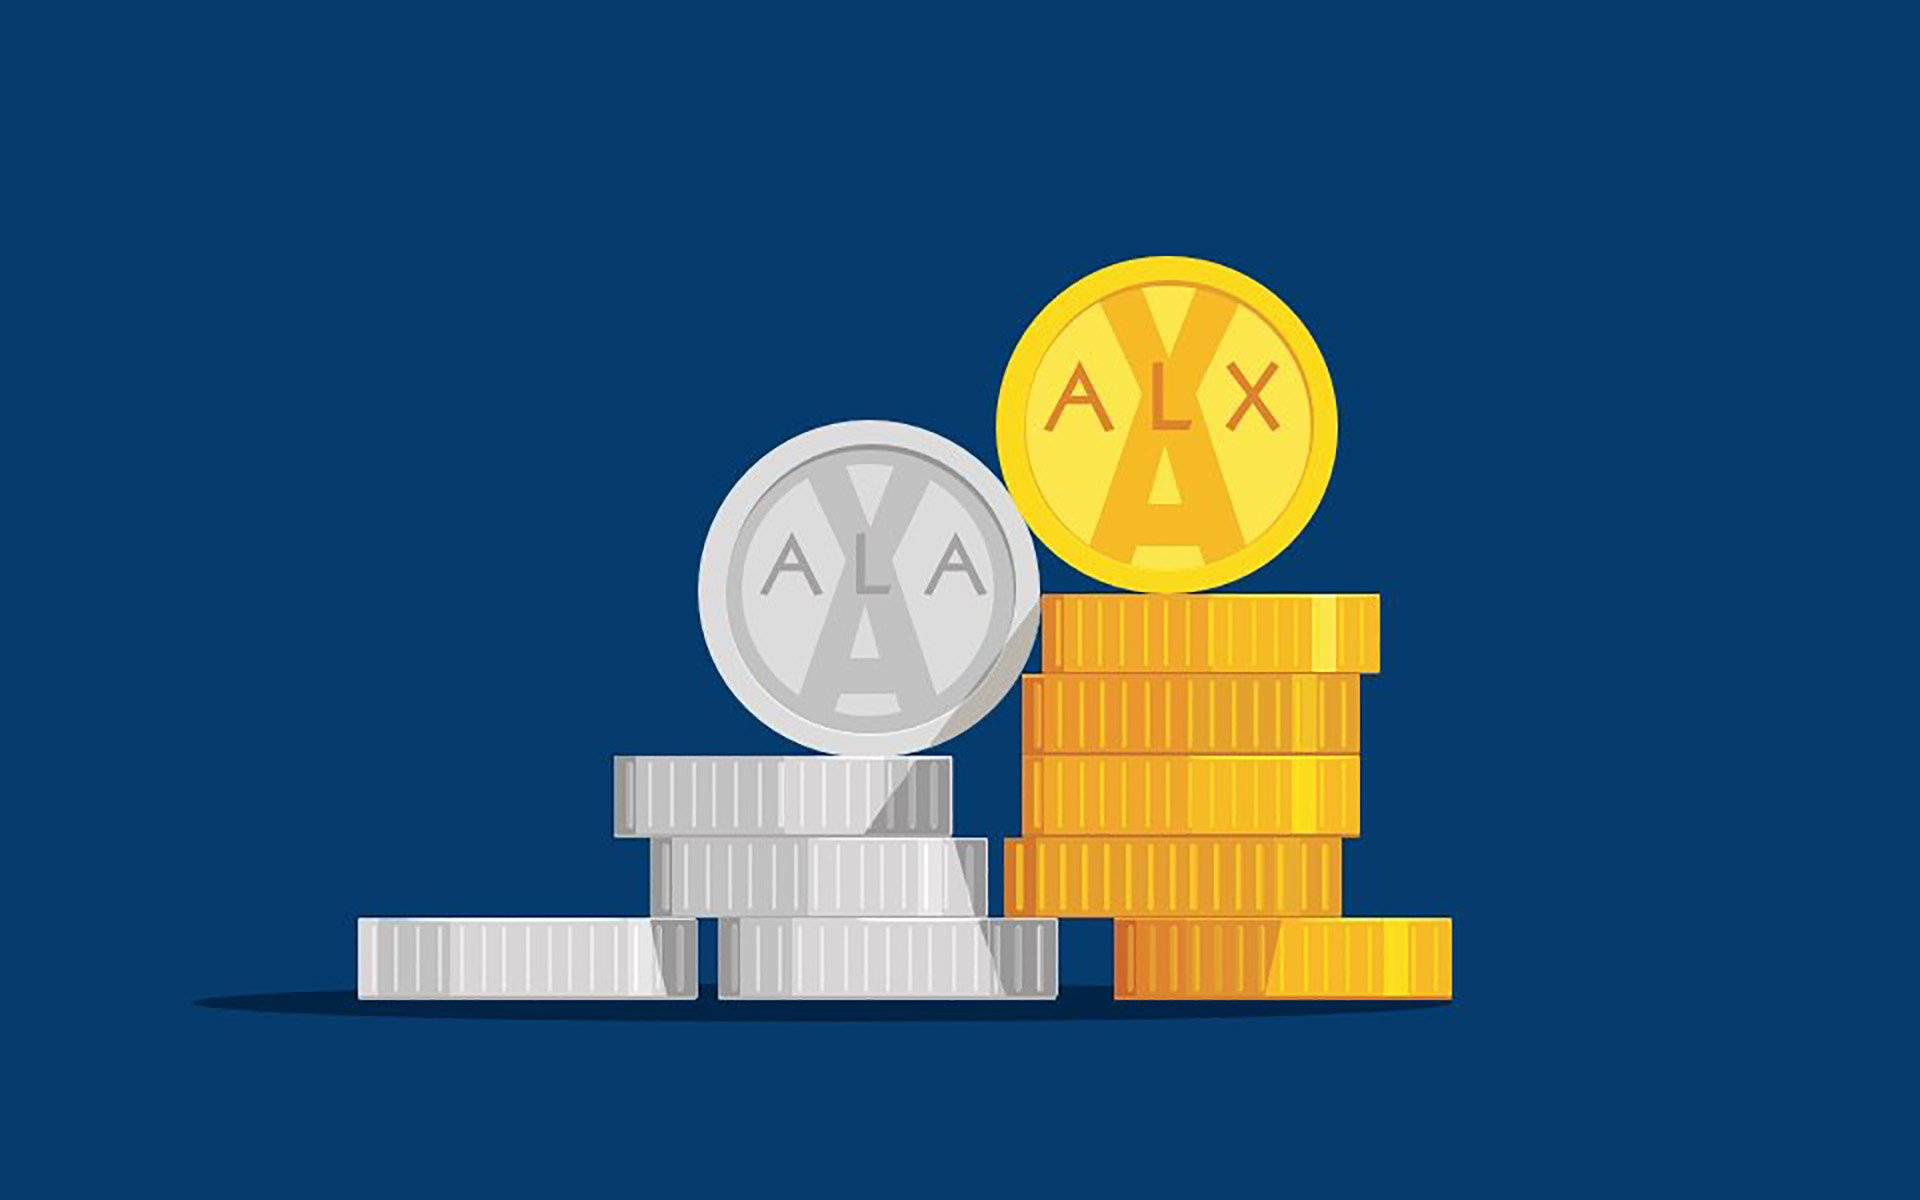 ALAX and Gionee Partnership Brings Mobile Gaming to Over 40 Million Users Across 50 Countries